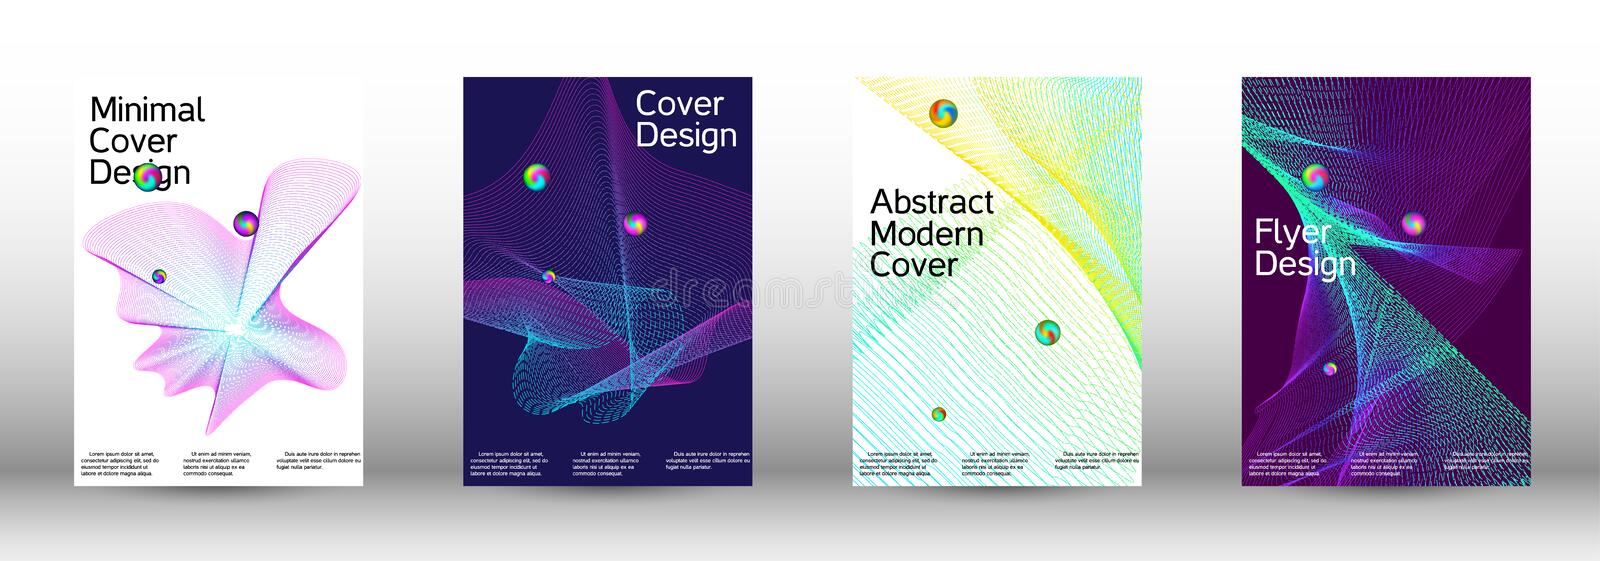 Cover design. Minimum coverage of a vector. Cover design. A set of modern abstract covers. Minimal vector cover design with abstract lines stock illustration